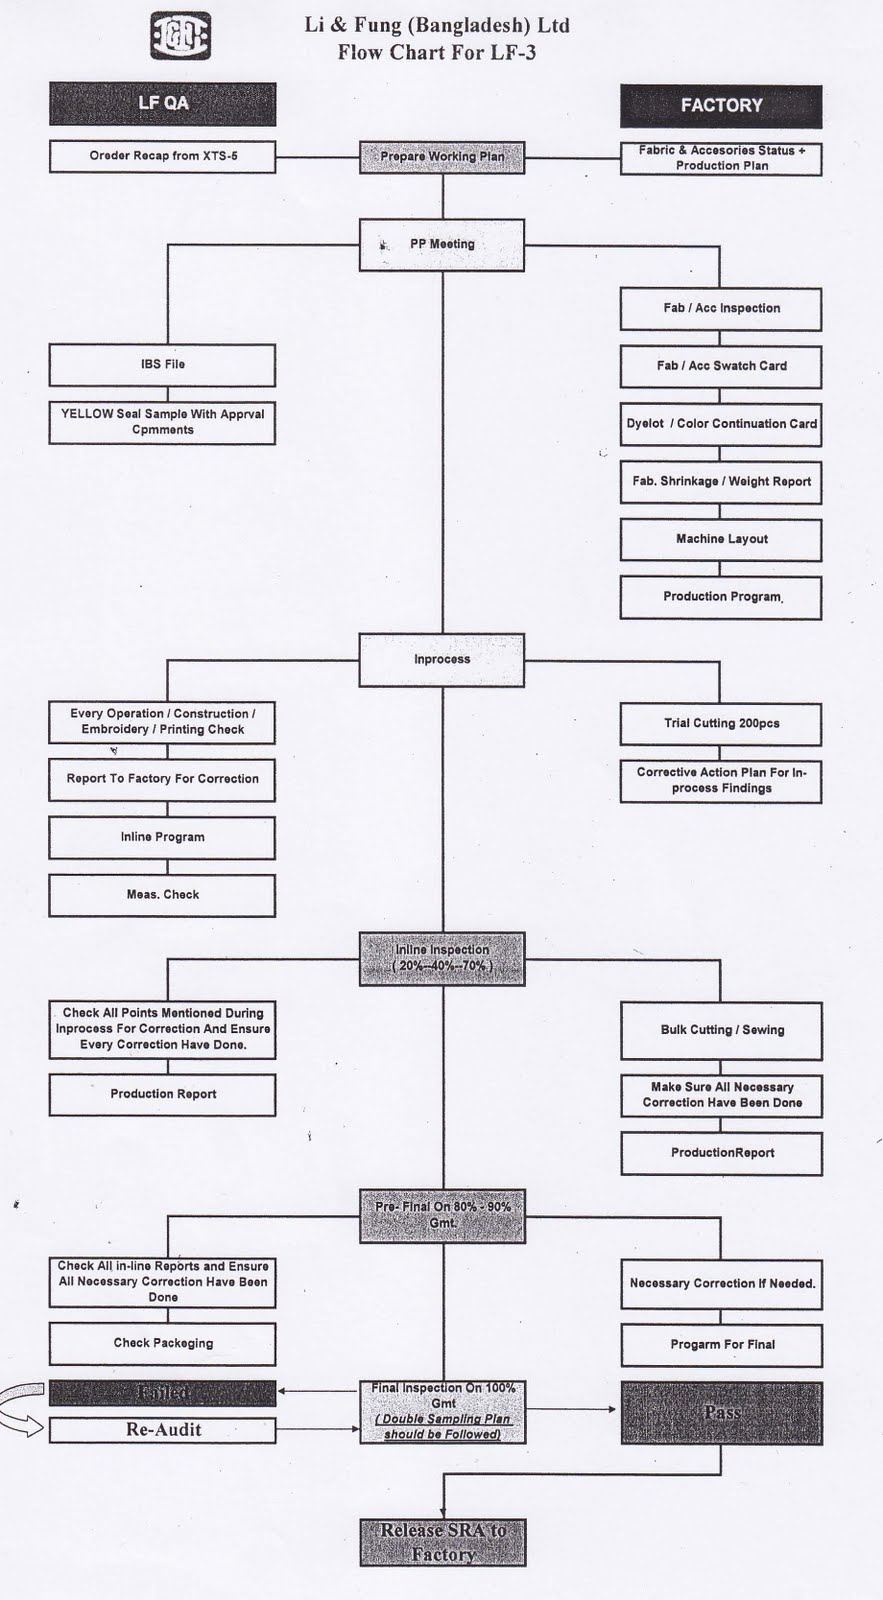 Azmol S Blog Flow Chart Of Quality Department With Supplier